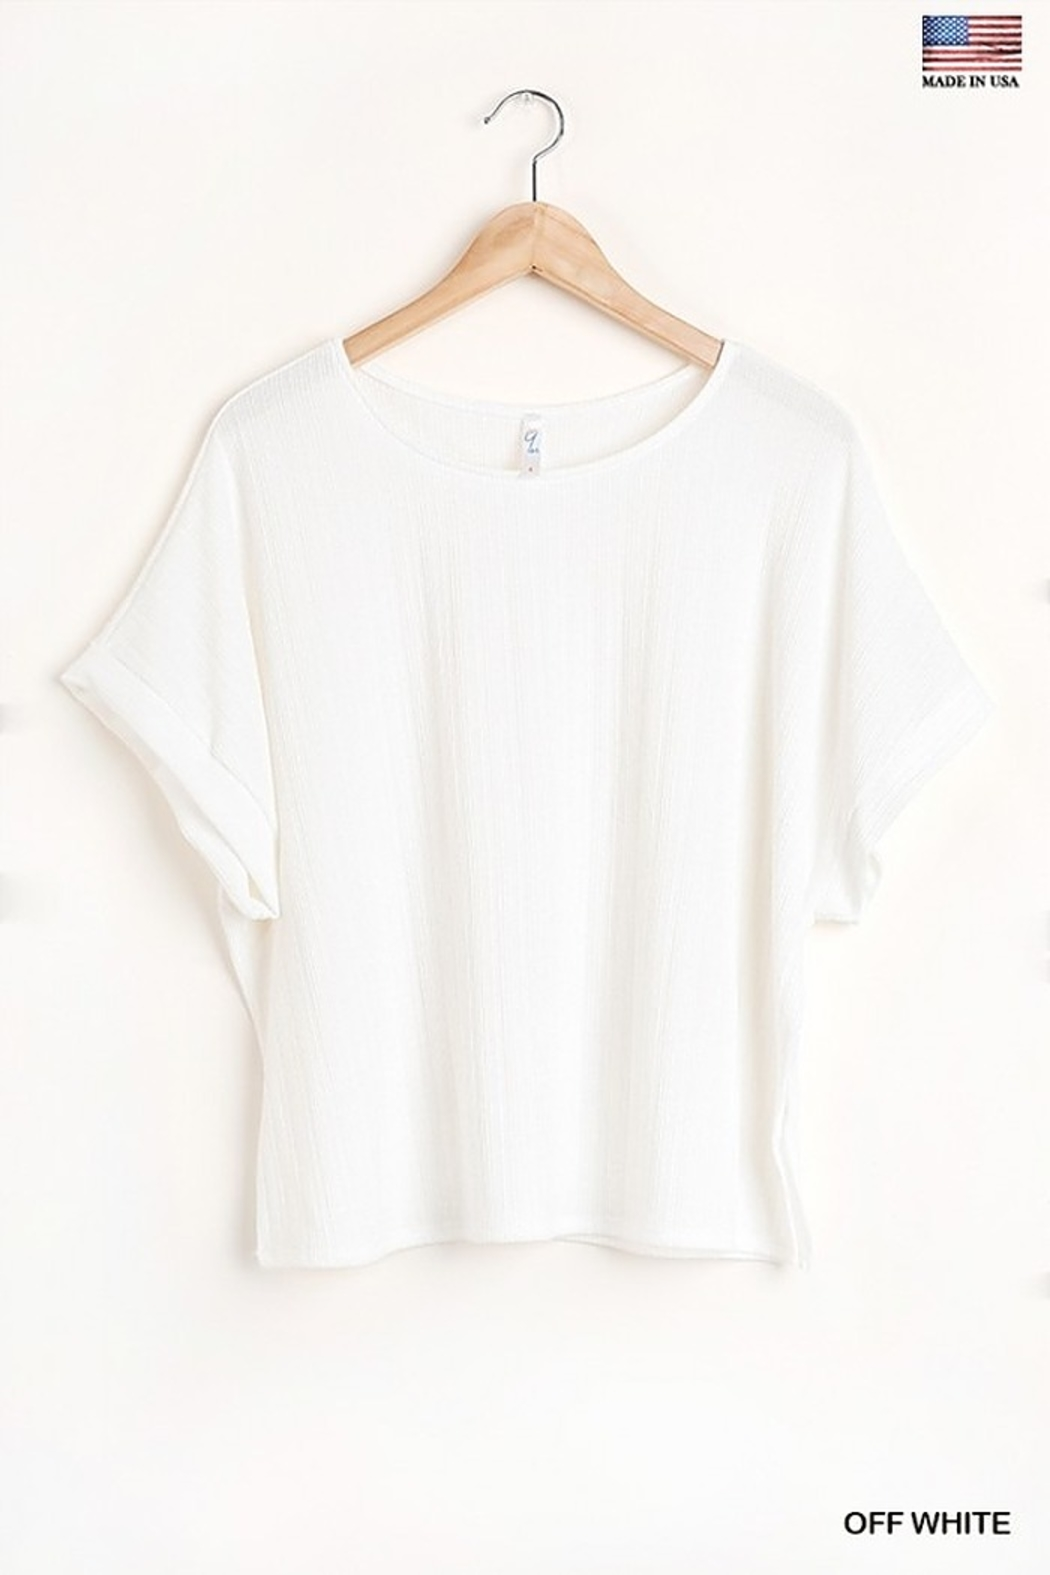 Umgee  Round Neck Short Sleeve Top with Side Slits and Lining Details - Main Image